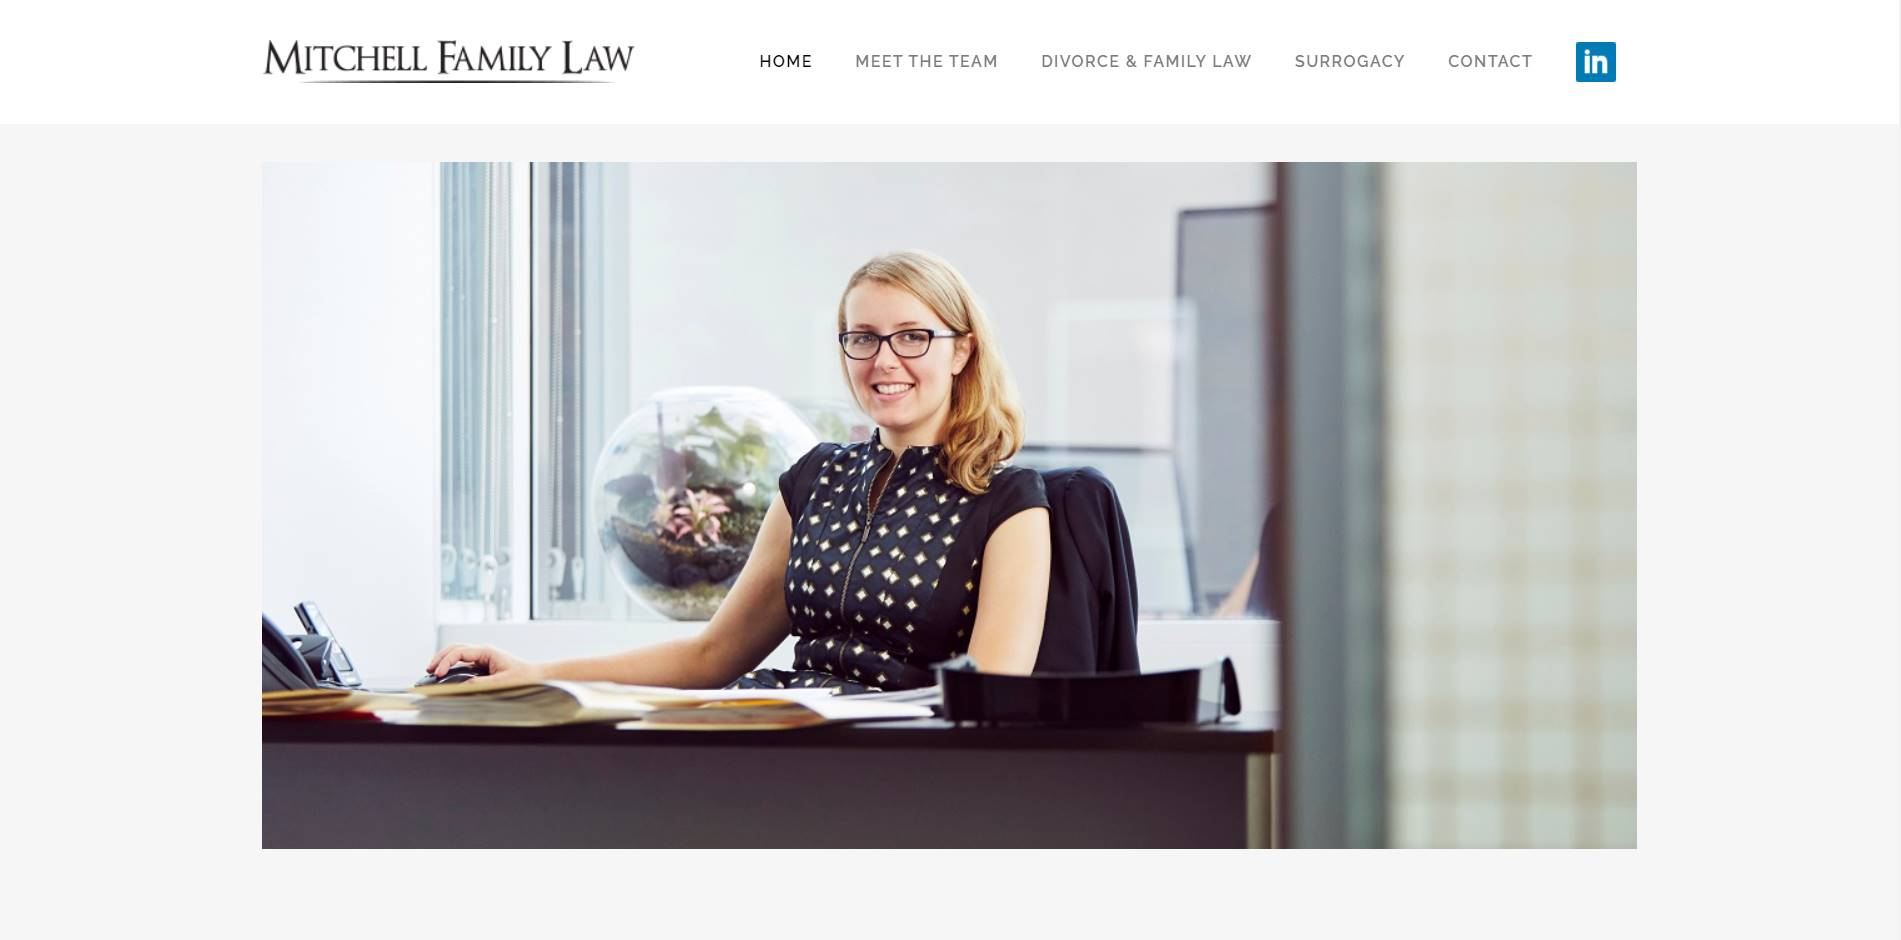 mitchell family law